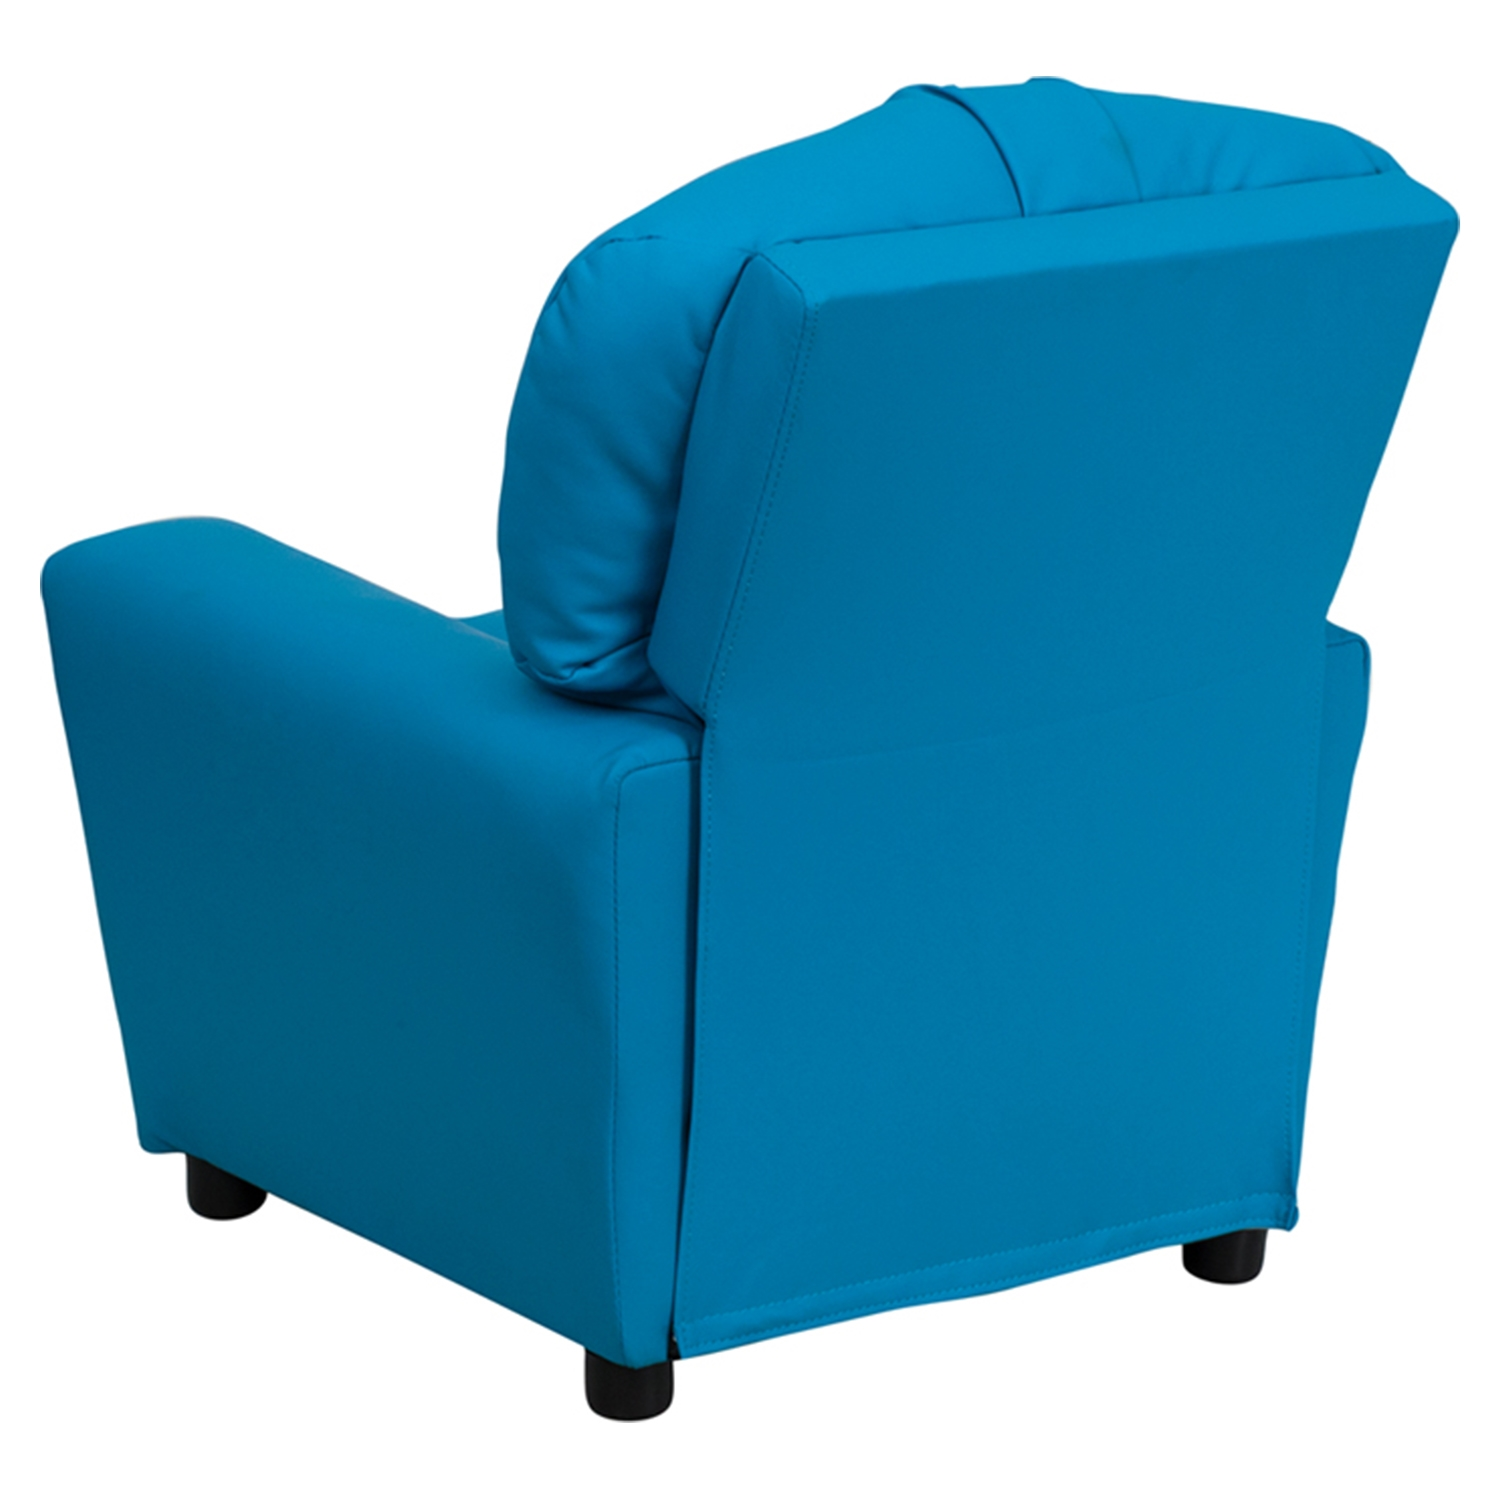 ... Upholstered Kids Recliner Chair   Cup Holder, Turquoise   FLSH BT 7950   ...